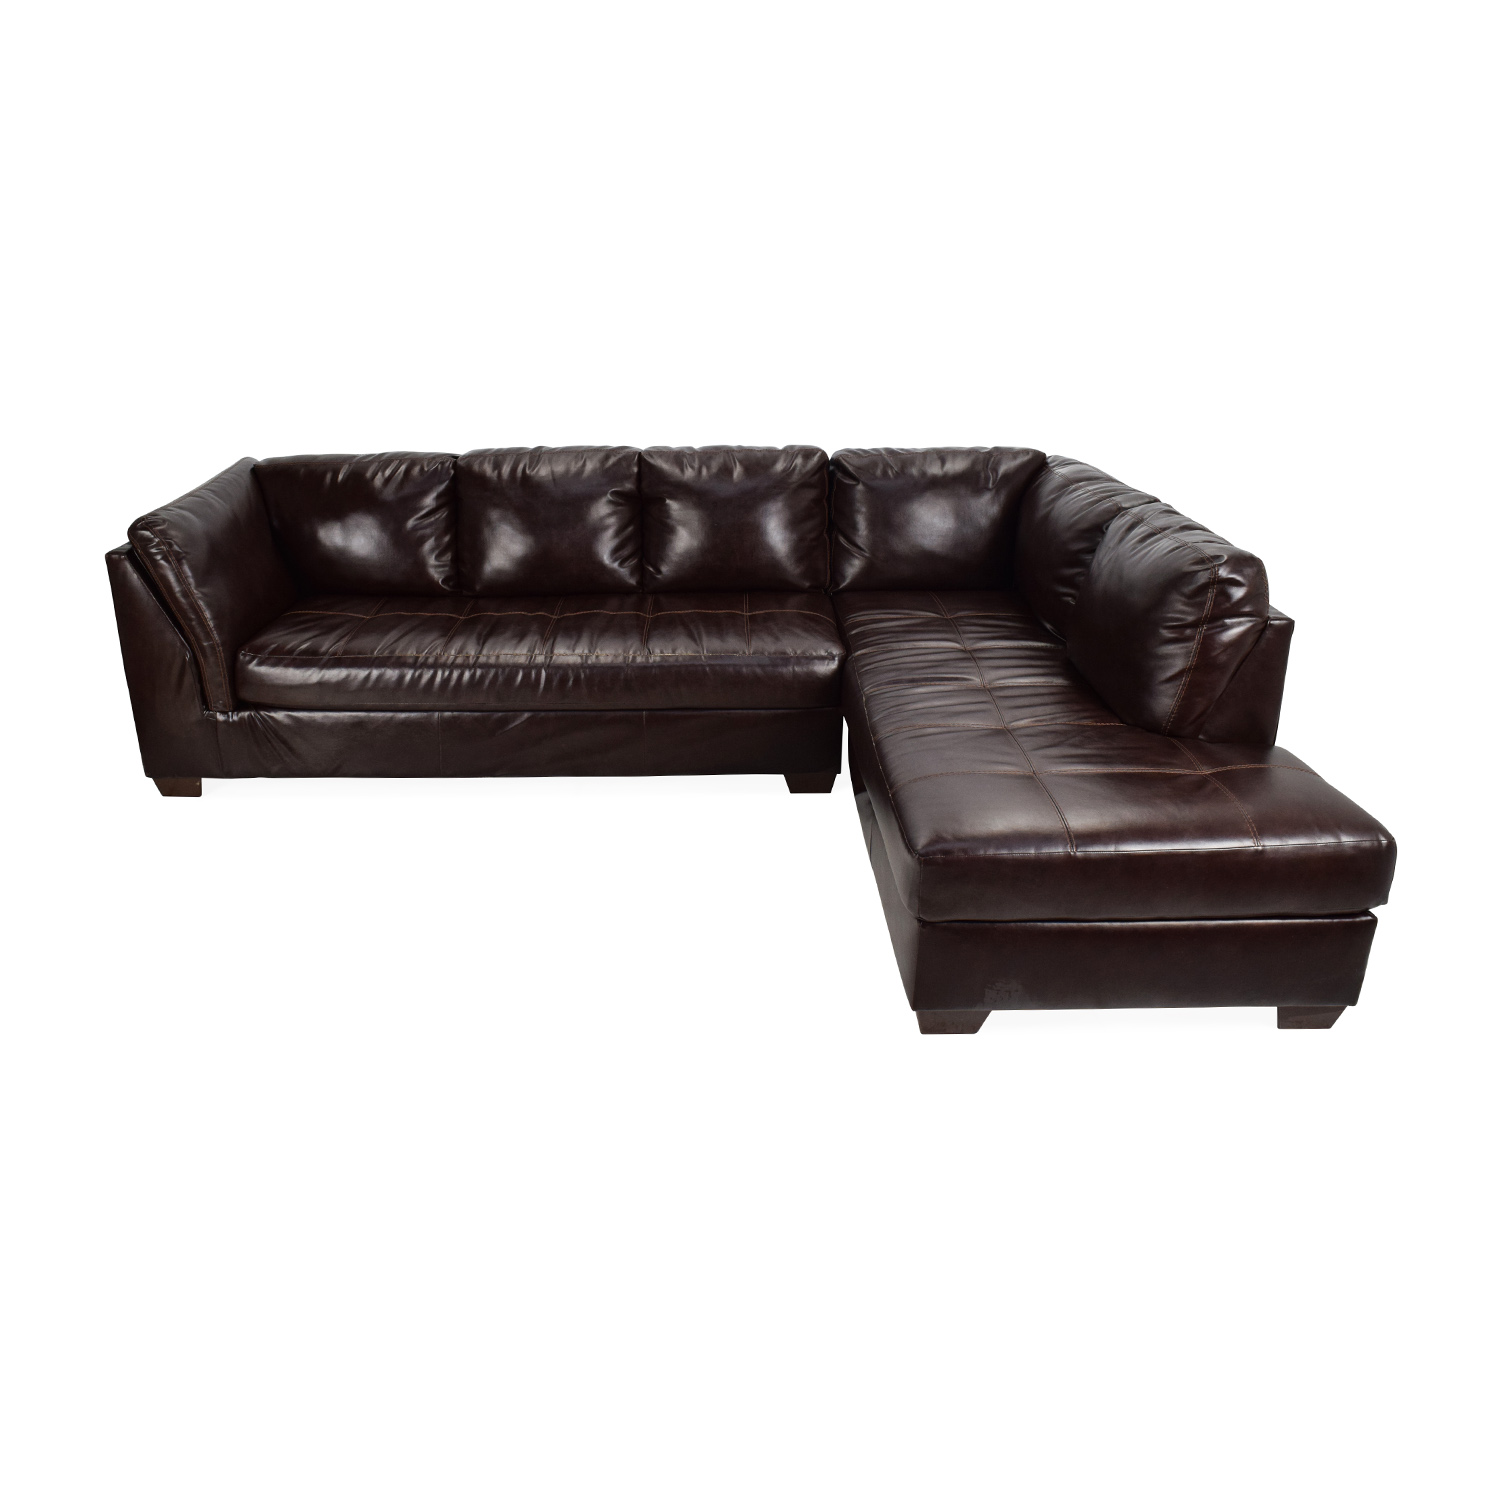 Jennifer sofas and sectionals jennifer convertibles s for Sectional sofa jennifer convertible